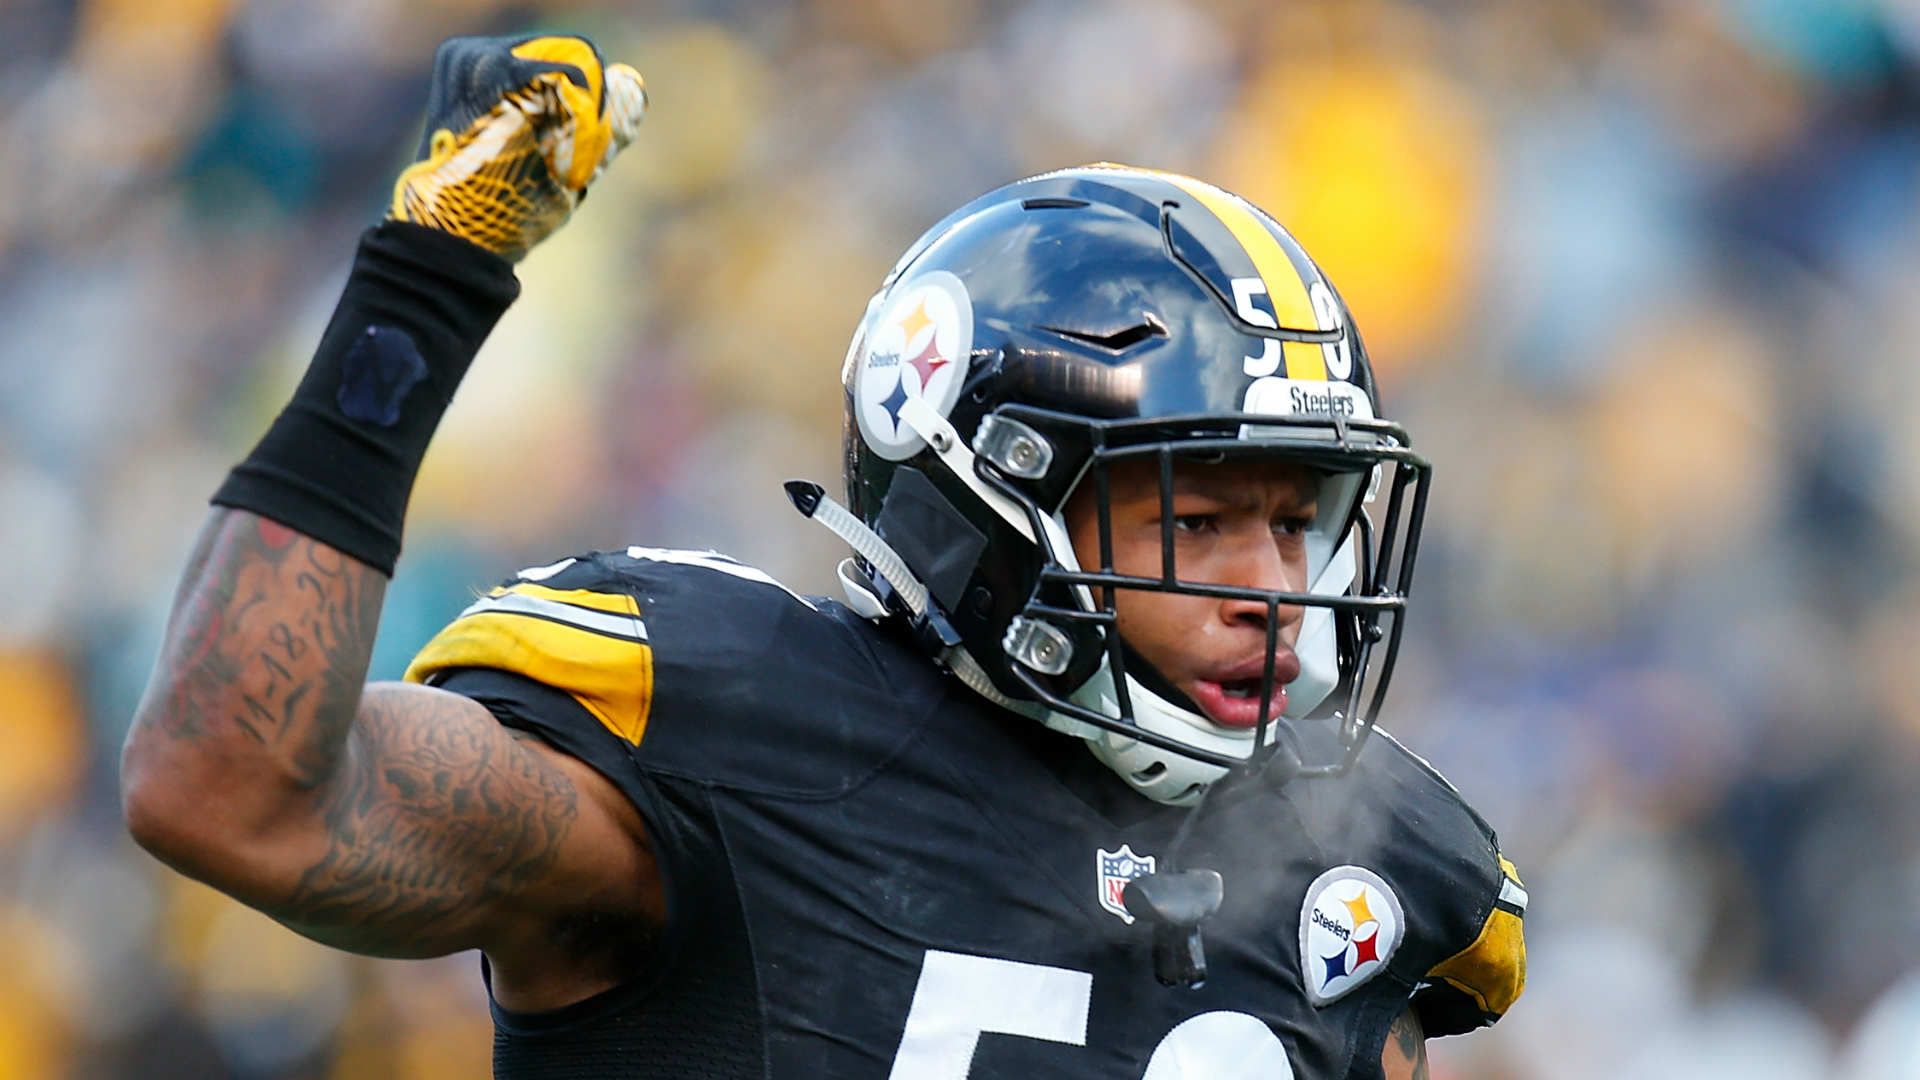 WATCH: Ryan Shazier shows off latest progress by deadlifting